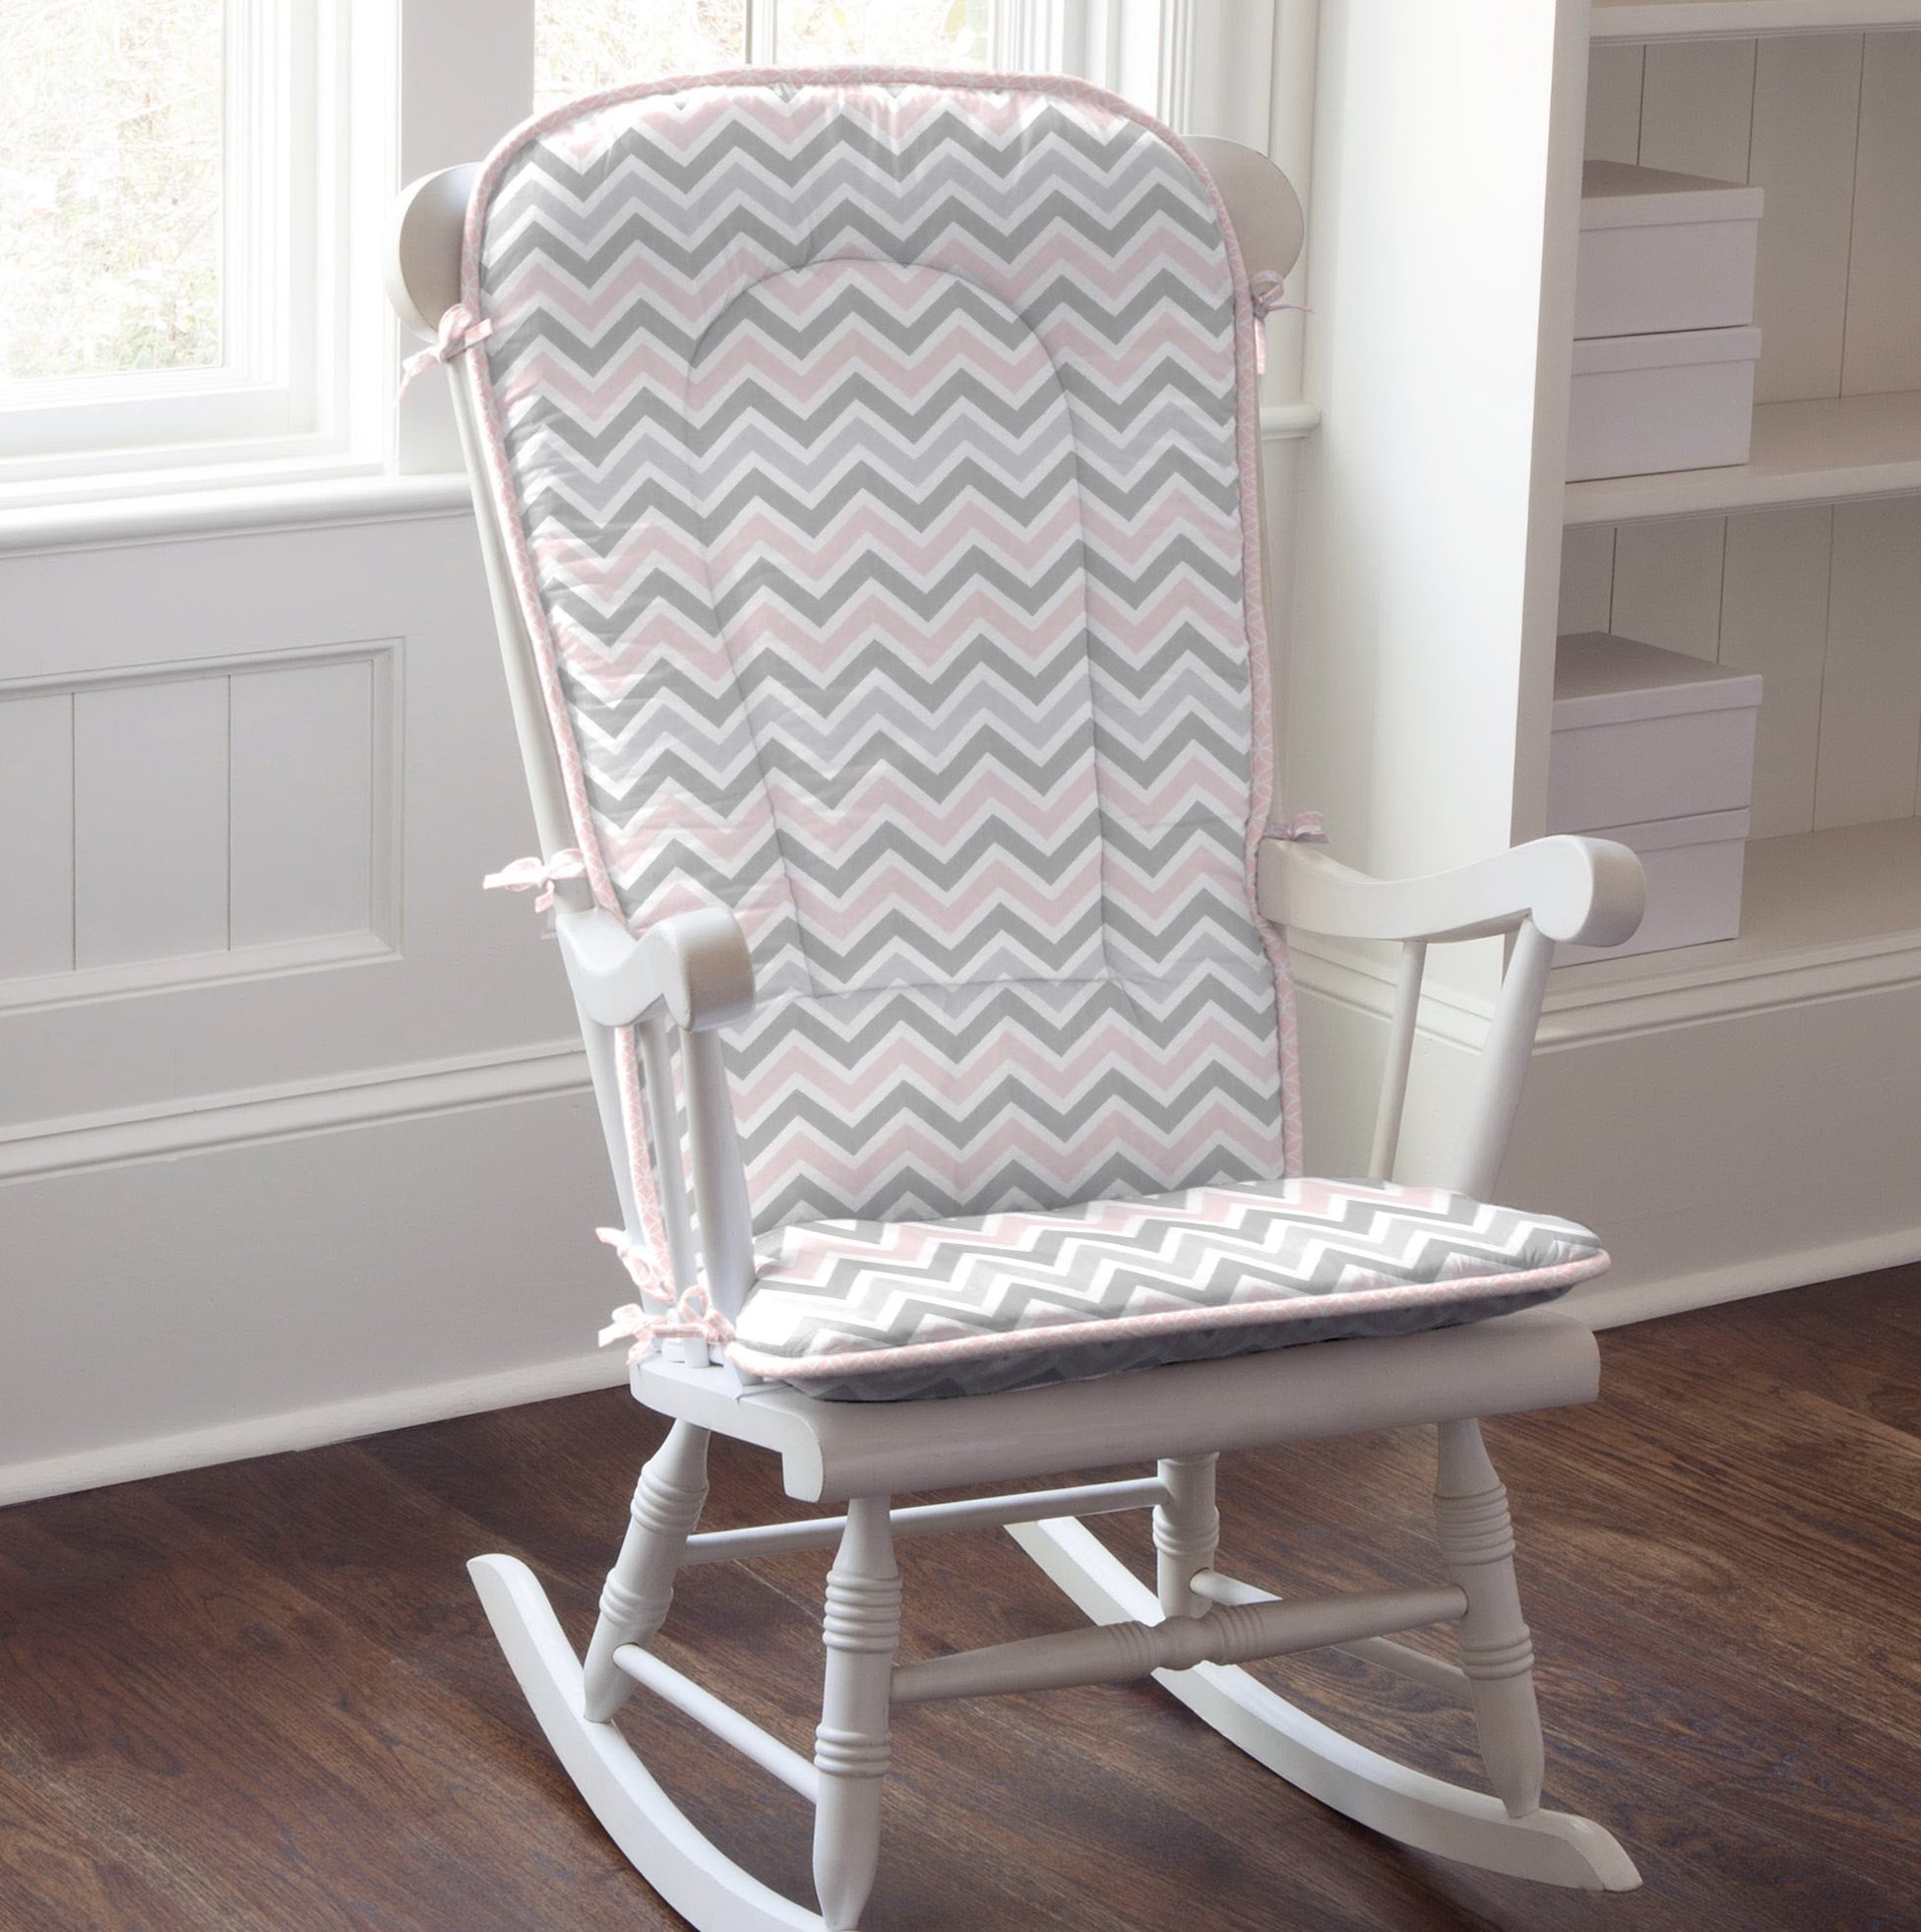 Chevron Rocking Chair Cushions